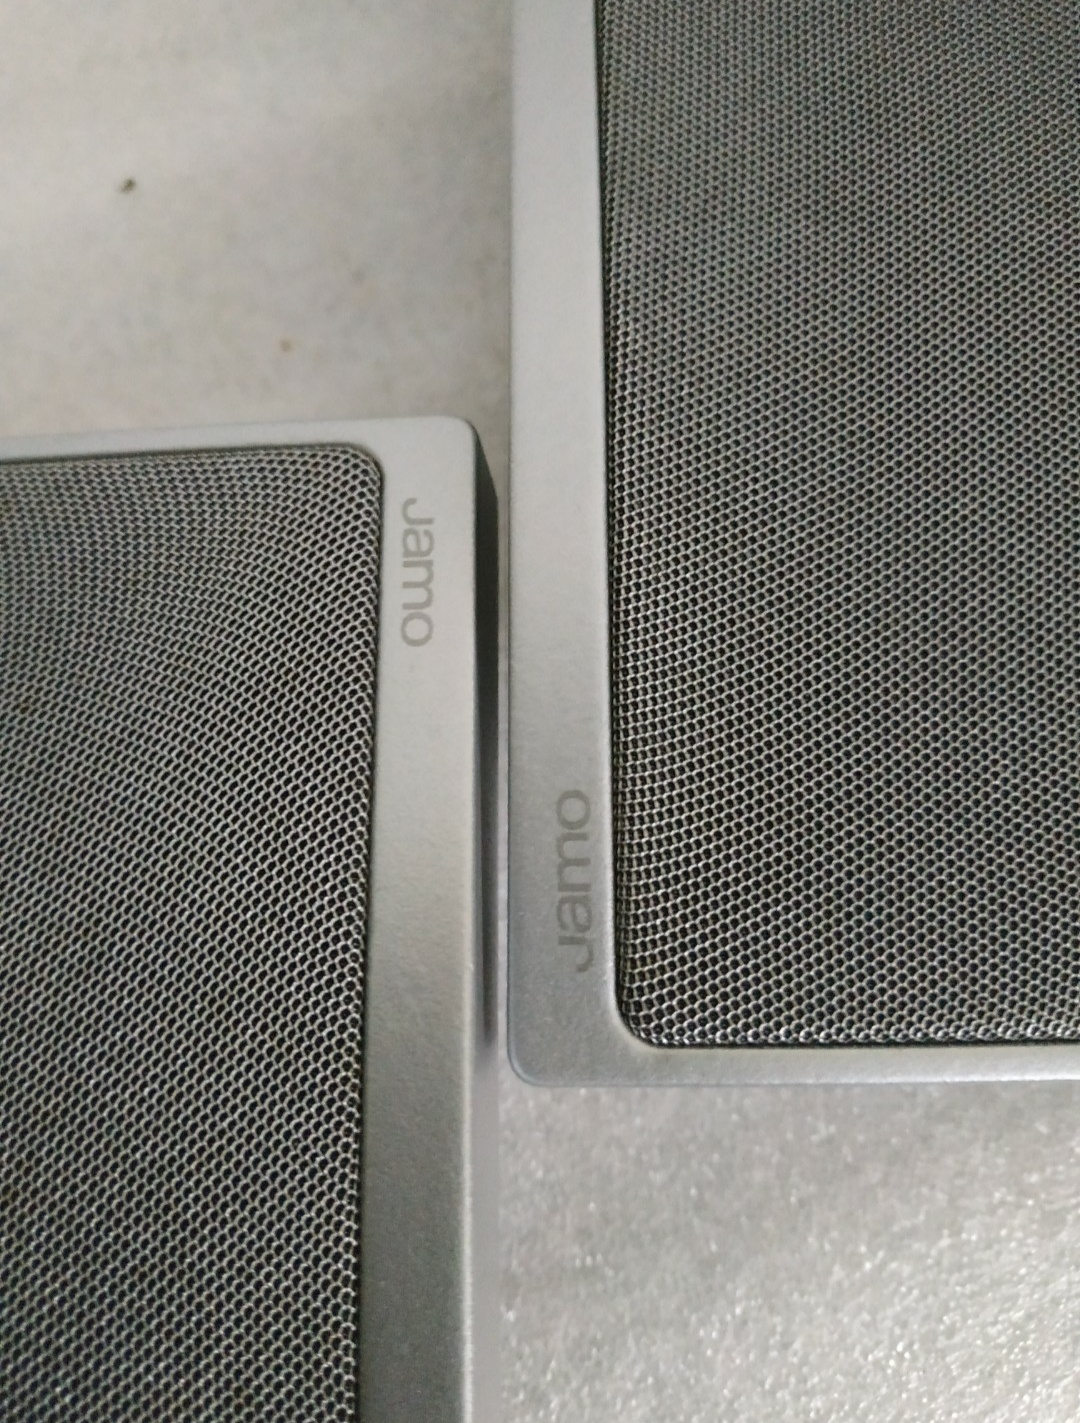 (not available) Jamo A500 flat speakers IMG_20190605_123114